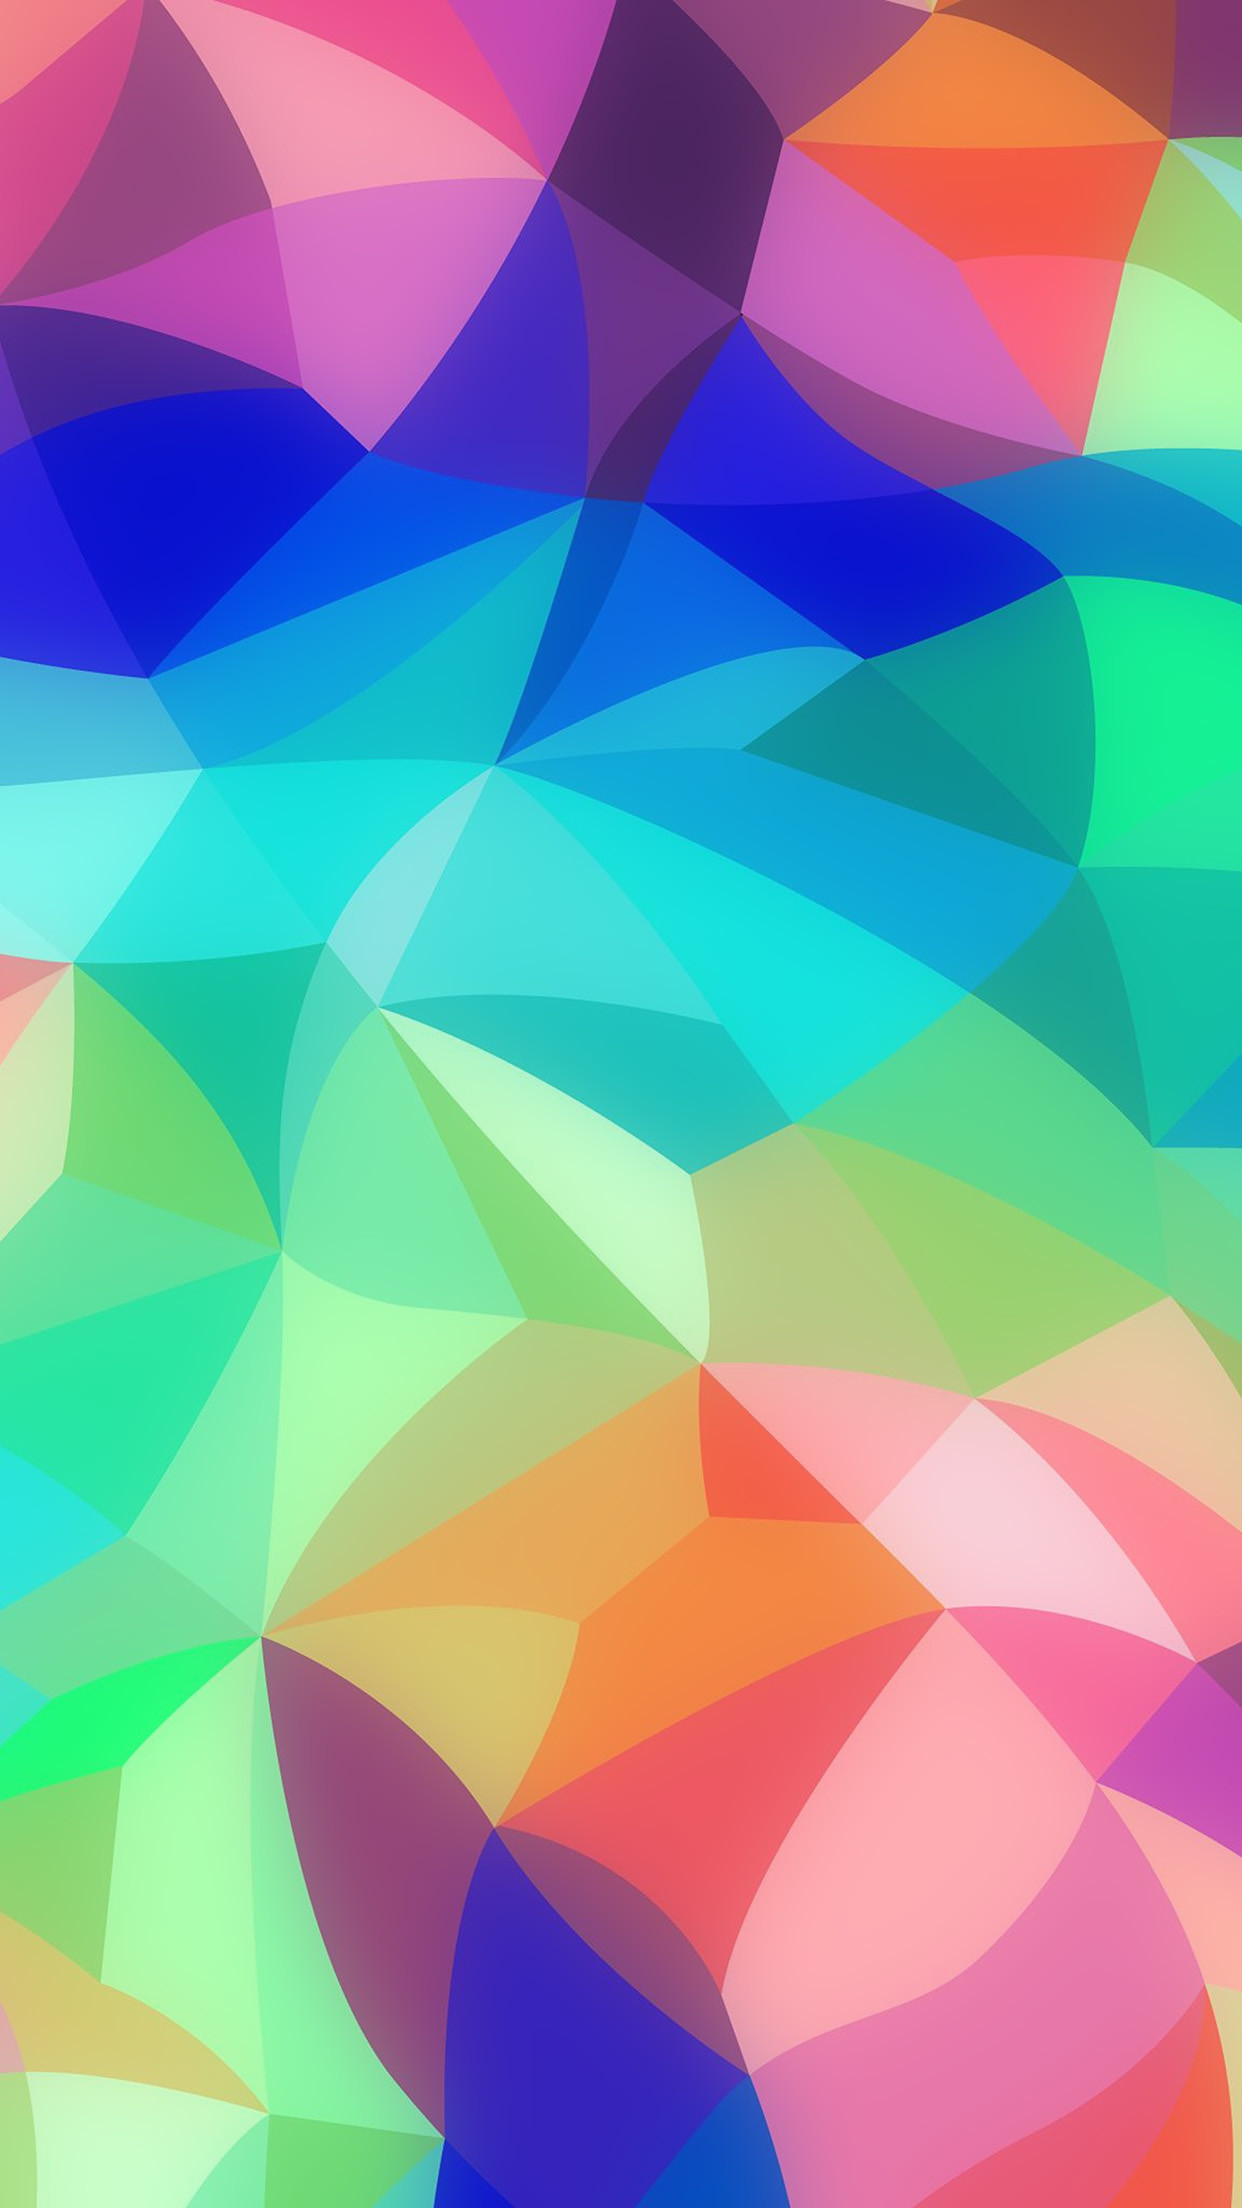 Res: 1242x2208, vk40-rainbow-abstract-colors-pastel-pattern